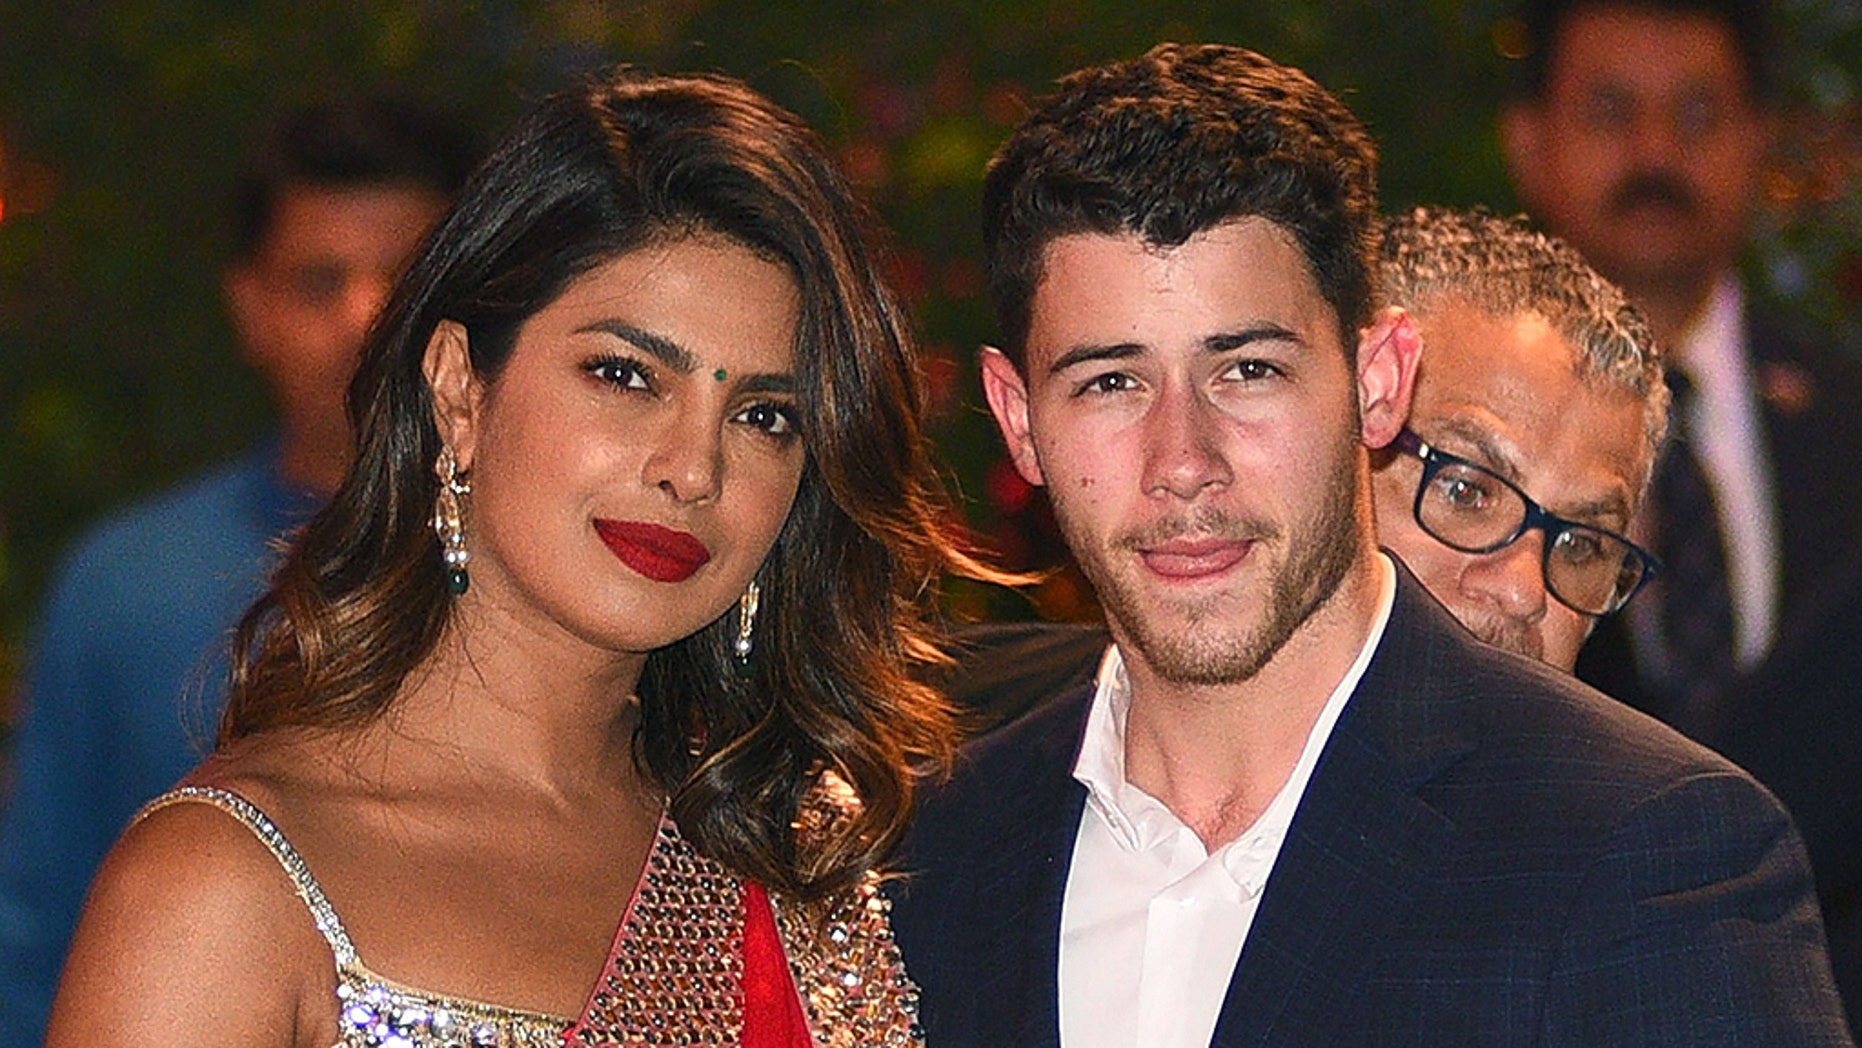 Indian Bollywood actress Priyanka Chopra (L) accompanied by Nick Jonas arrive for the pre-engagement party of India's richest man and Reliance Industries Limited Chairman, Mukesh Ambanis eldest son Akash Ambani and fiancee Shloka Mehta in Mumbai on June 28, 2018. (Photo by SUJIT JAISWAL / AFP)        (Photo credit should read SUJIT JAISWAL/AFP/Getty Images)